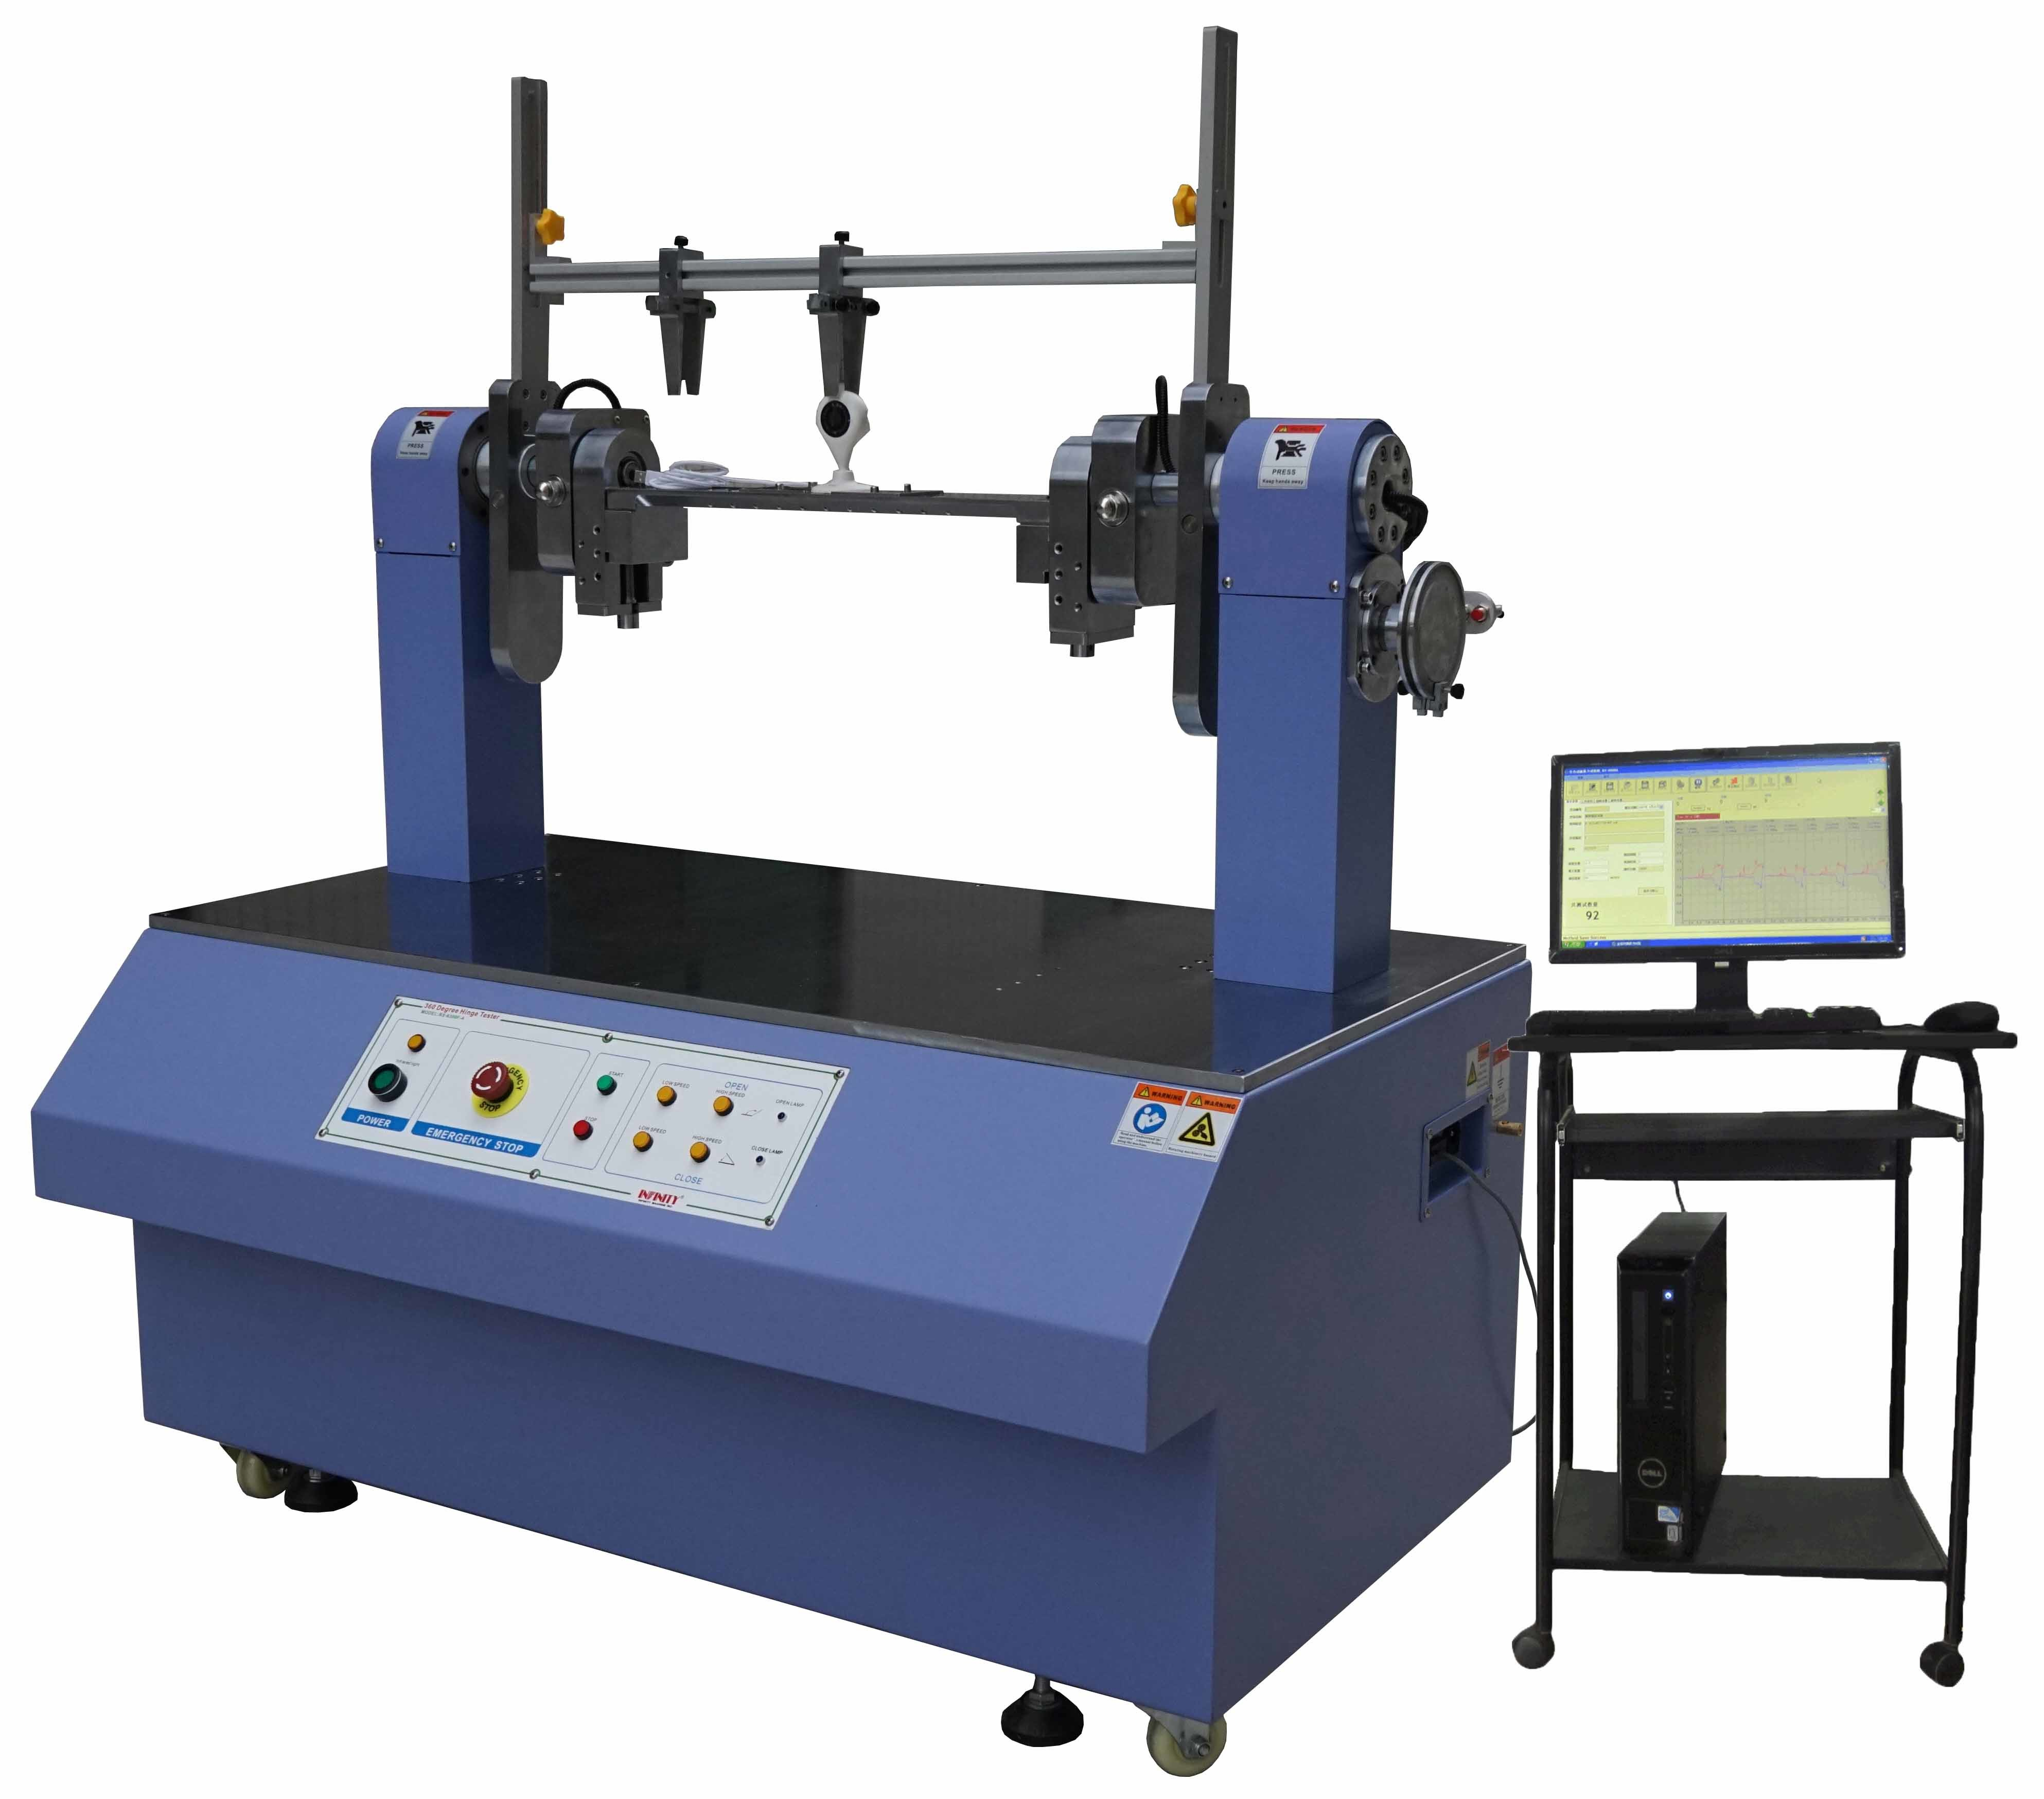 360 Degree Servo Control Automatic Torsion Testing Machine for Notebook LCD TV DVD Single Hinge